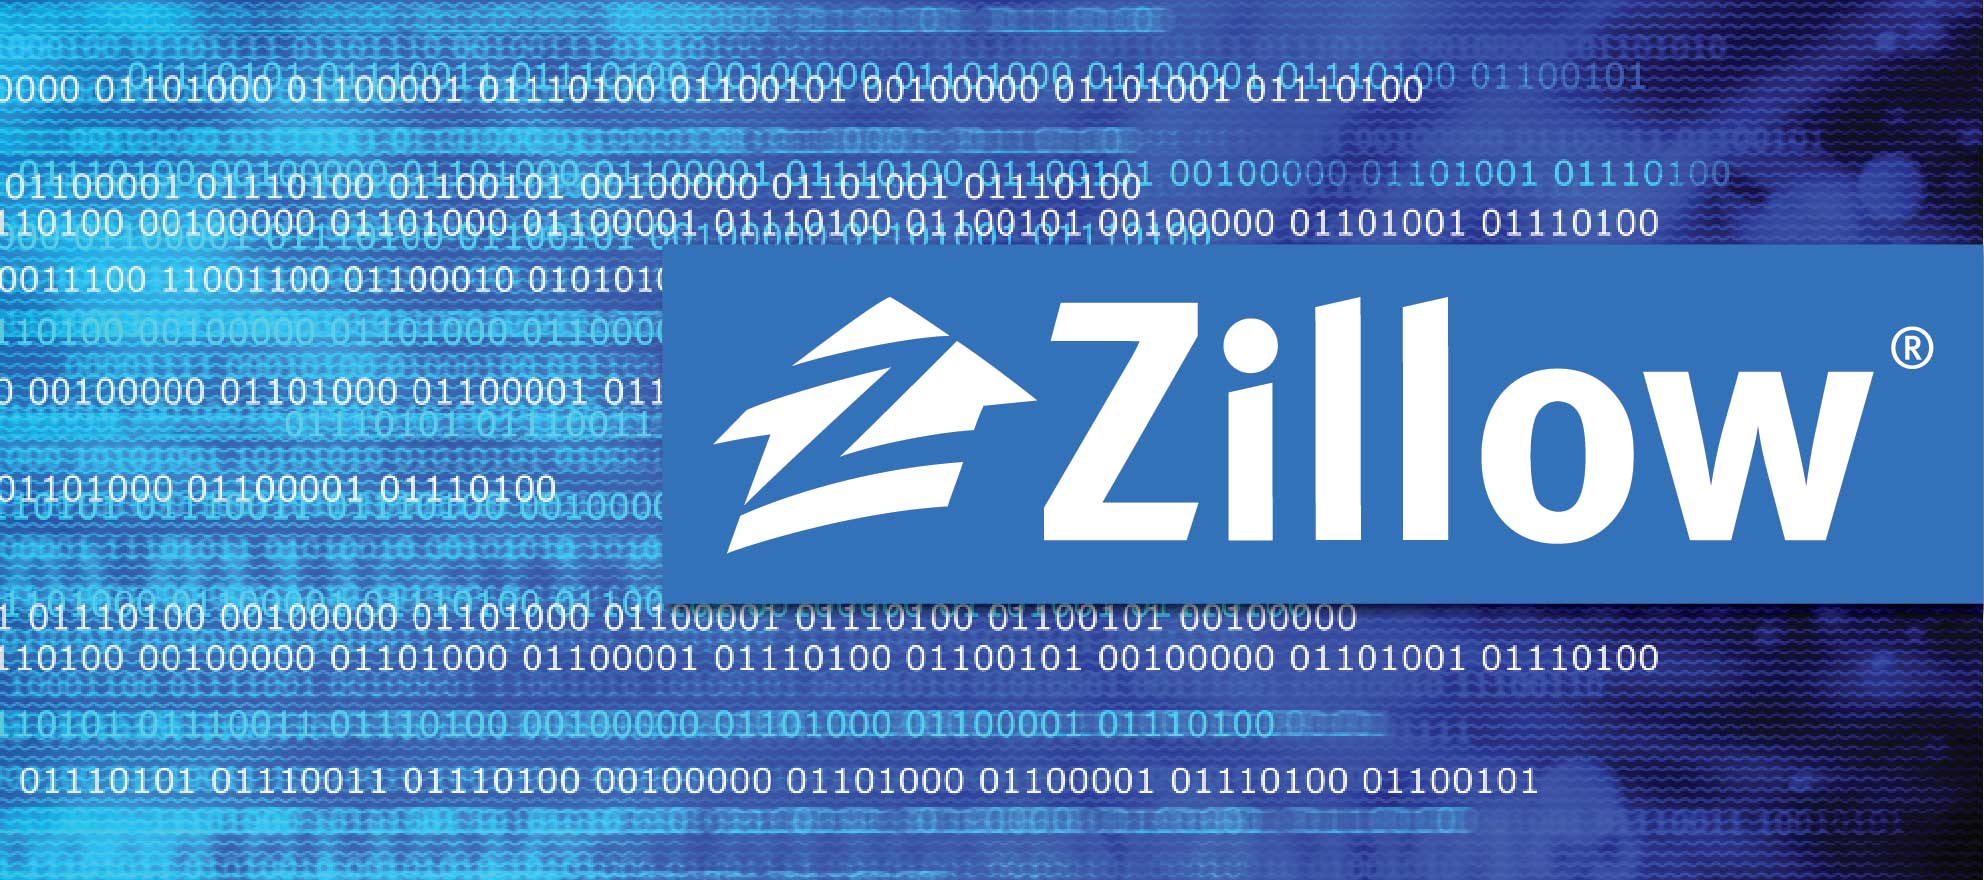 Zillow secures direct feeds from 25 MLSs in February